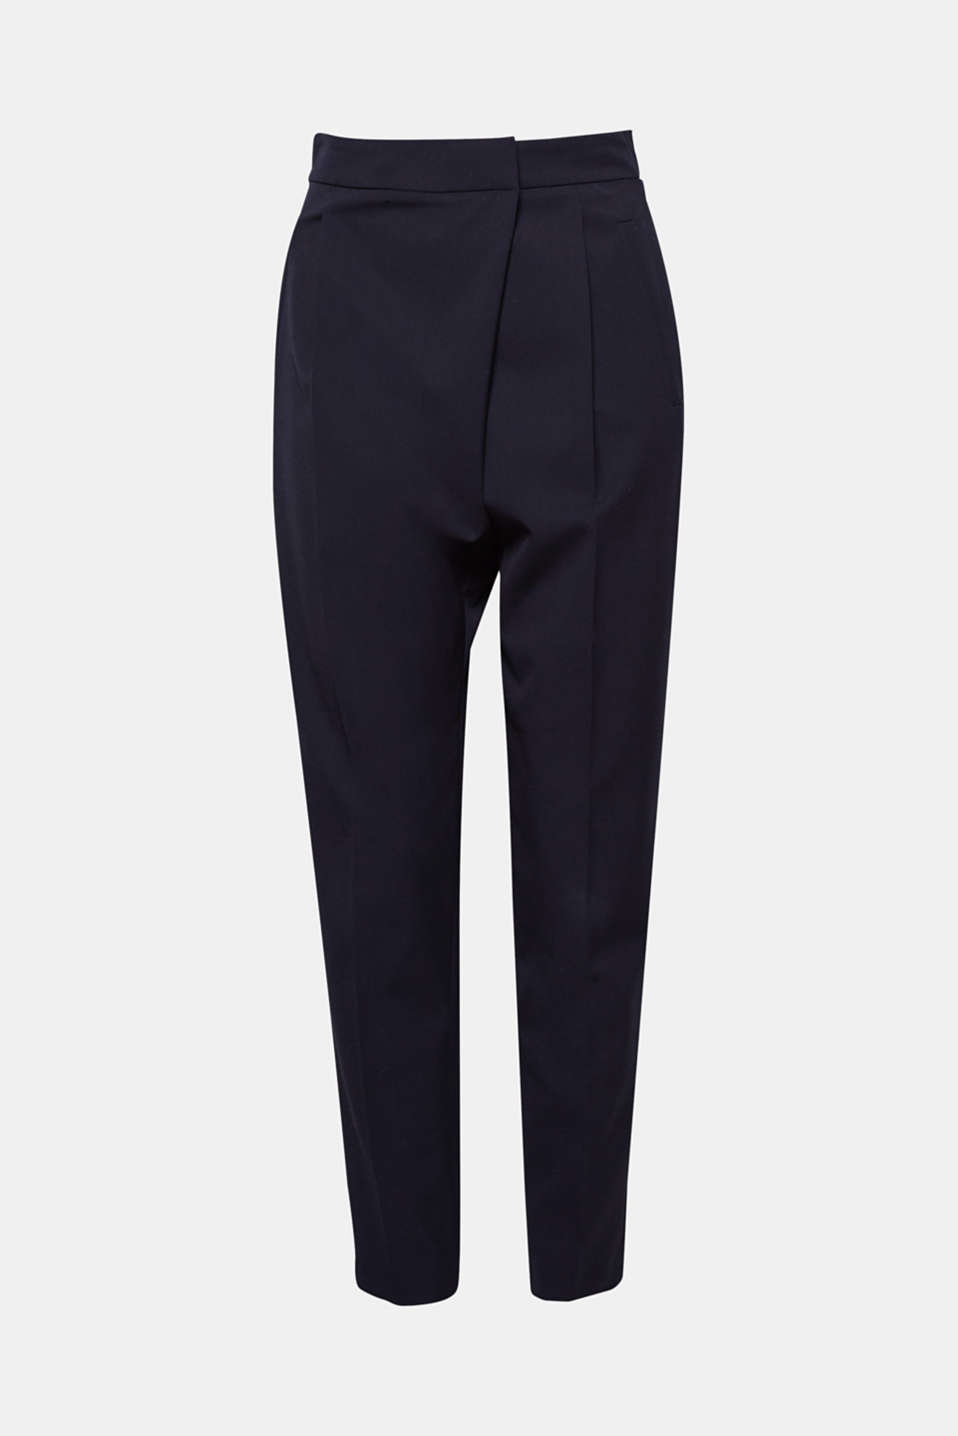 A wrap-over effect on the front, pleats on the back: the waist of these lightweight fabric stretch trousers has it all!